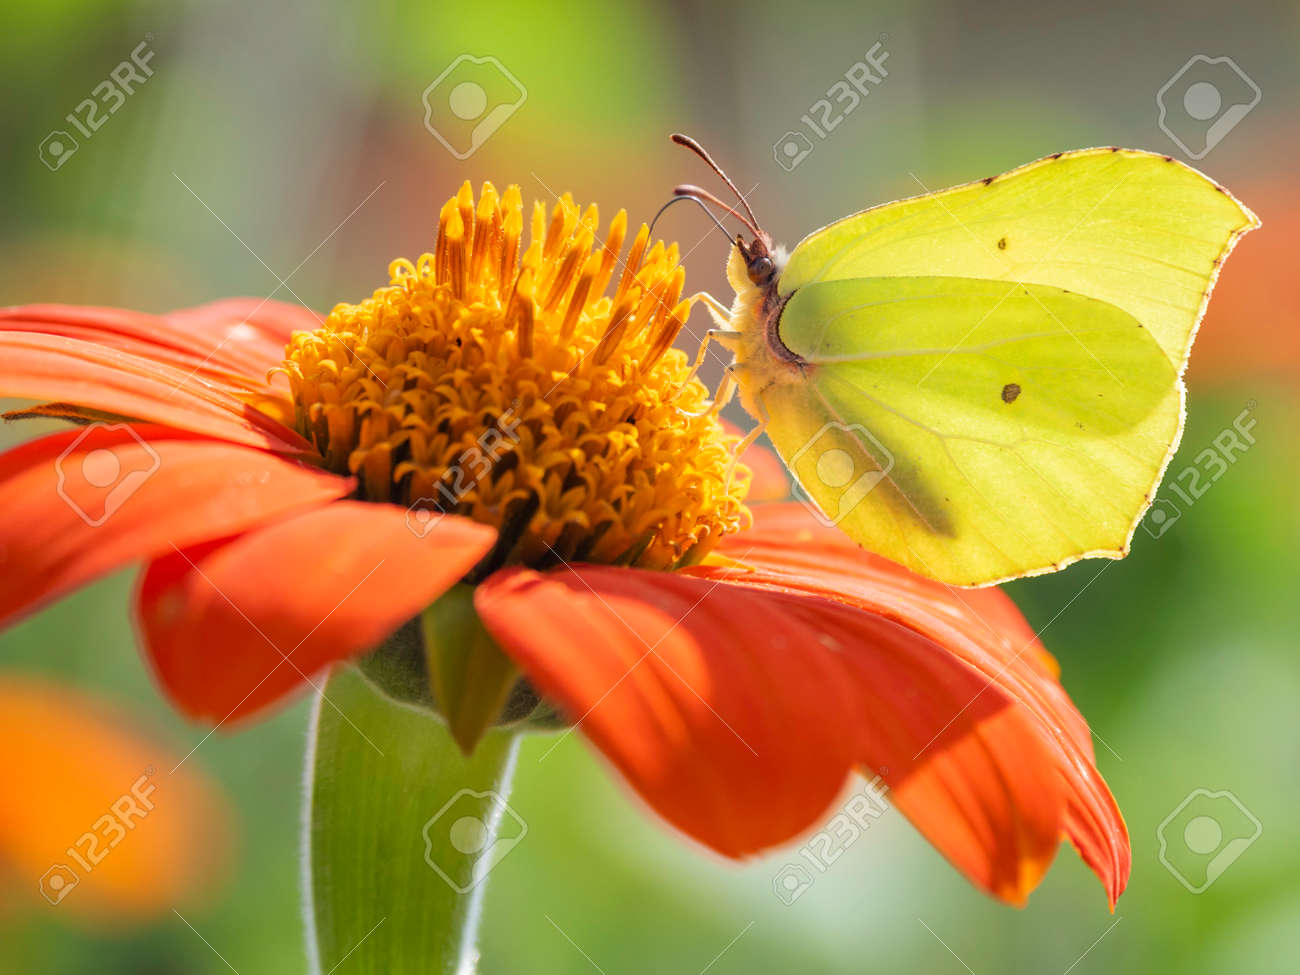 Gonepteryx cleopatra or Cleopatra butterfly collect pollen from red flower. Bright and colorful insect on blooming plant. Summer natural background. - 172455437